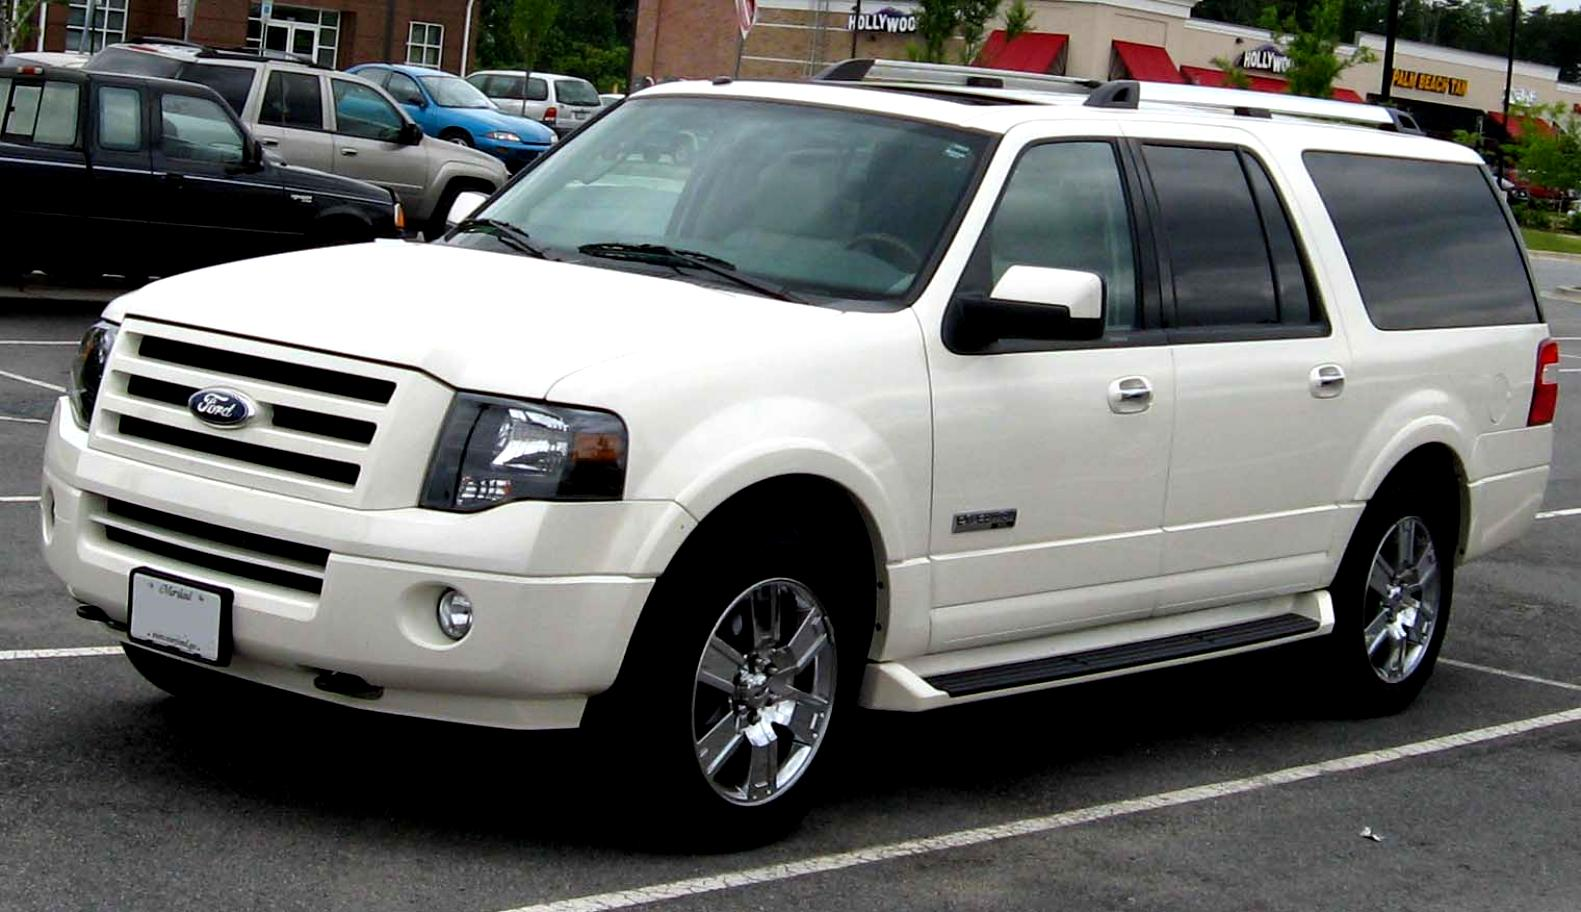 Ford Expedition 2002 #38